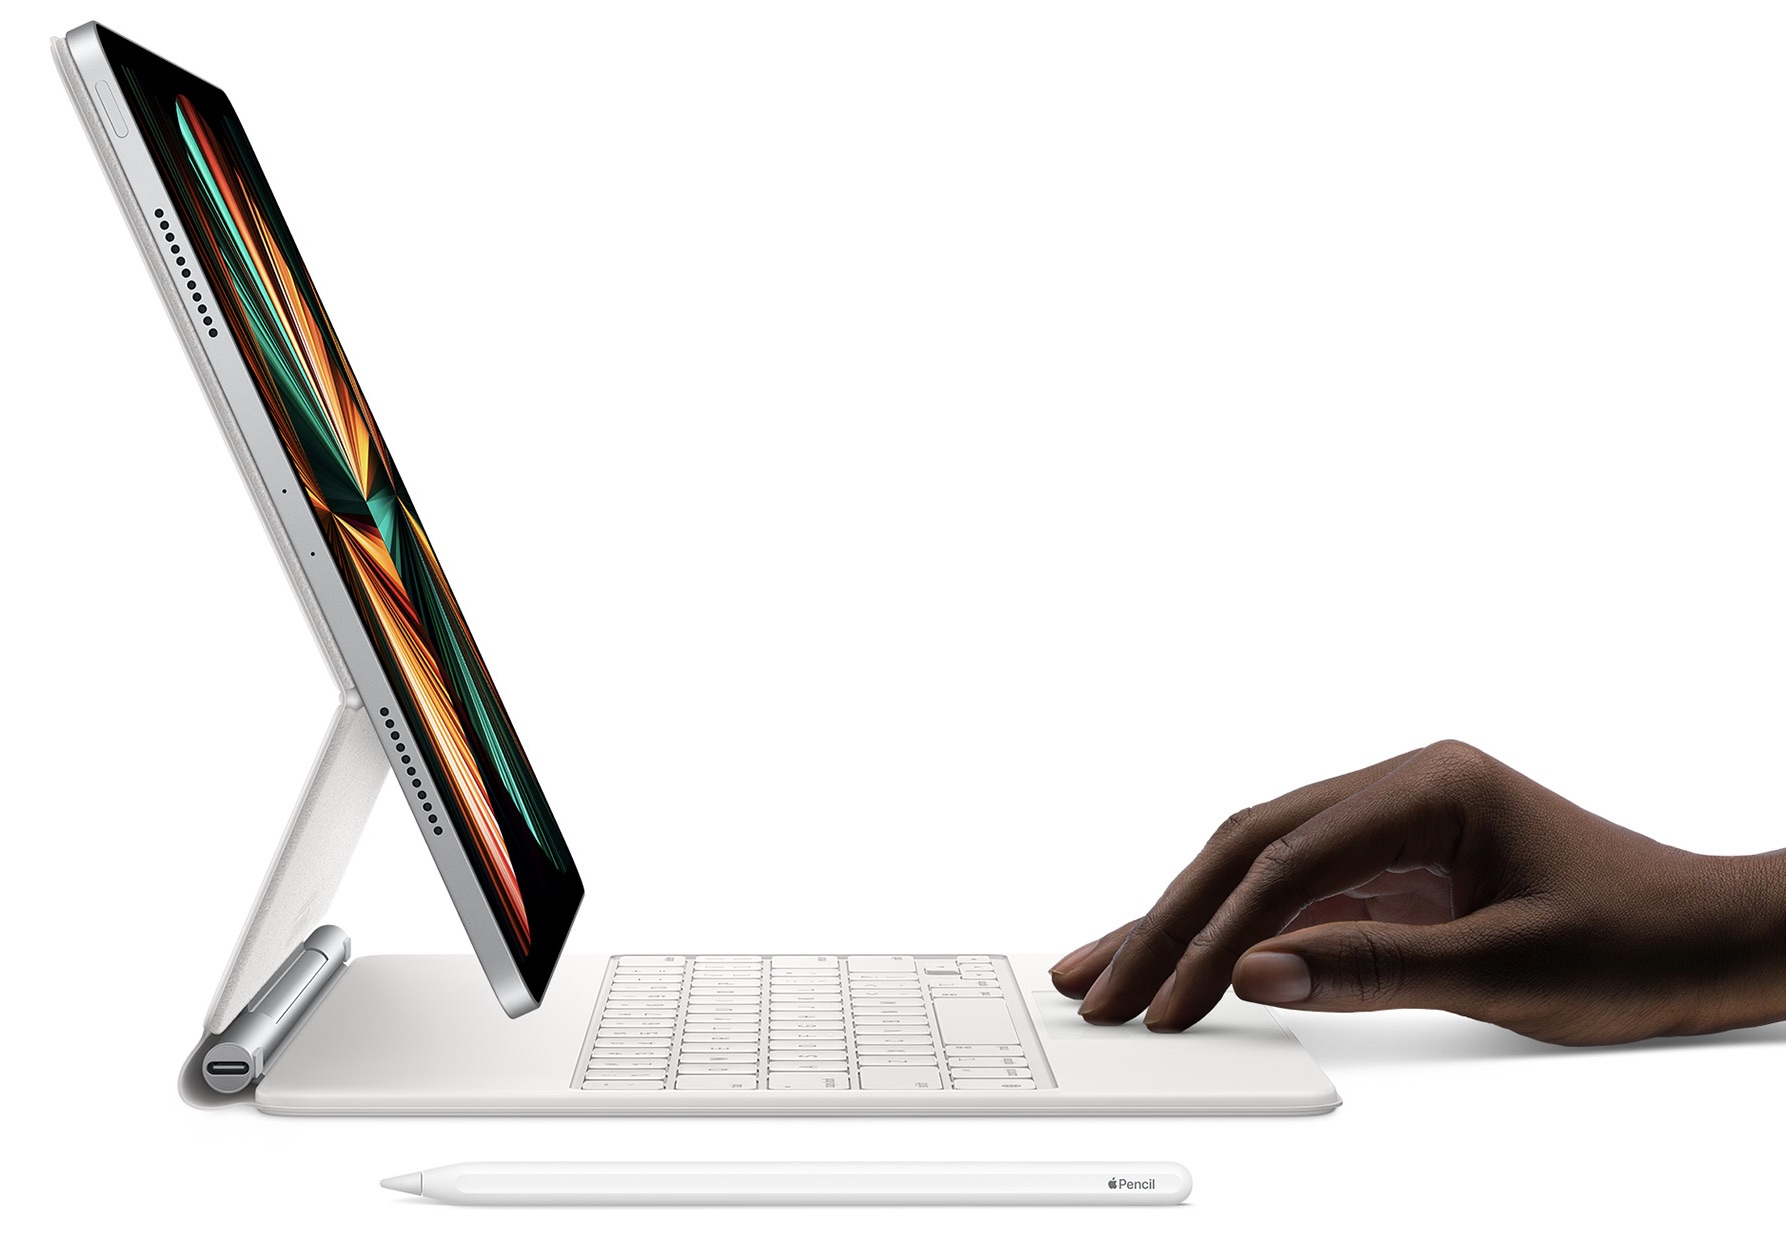 Maxed Out M1 12.9-Inch iPad Pro With 5G, 16GB RAM, and 2TB ...